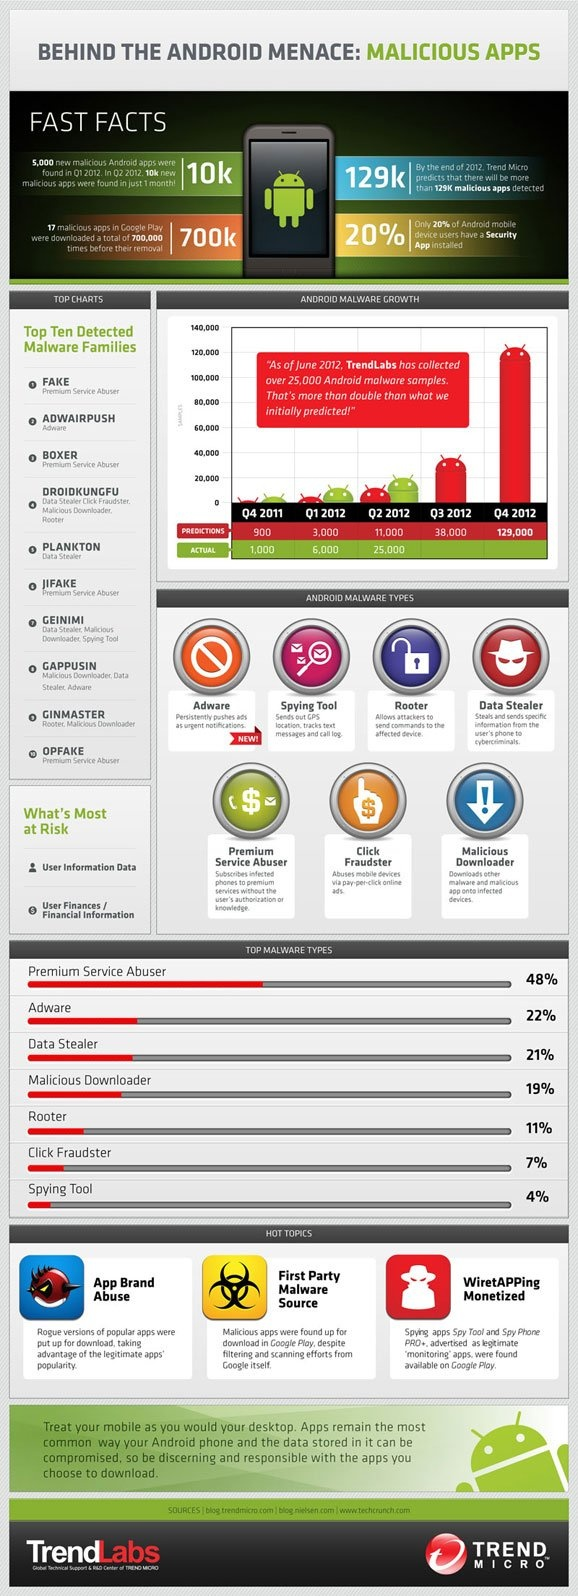 Behind the #Android menace: malicious apps. #infografia #infographic